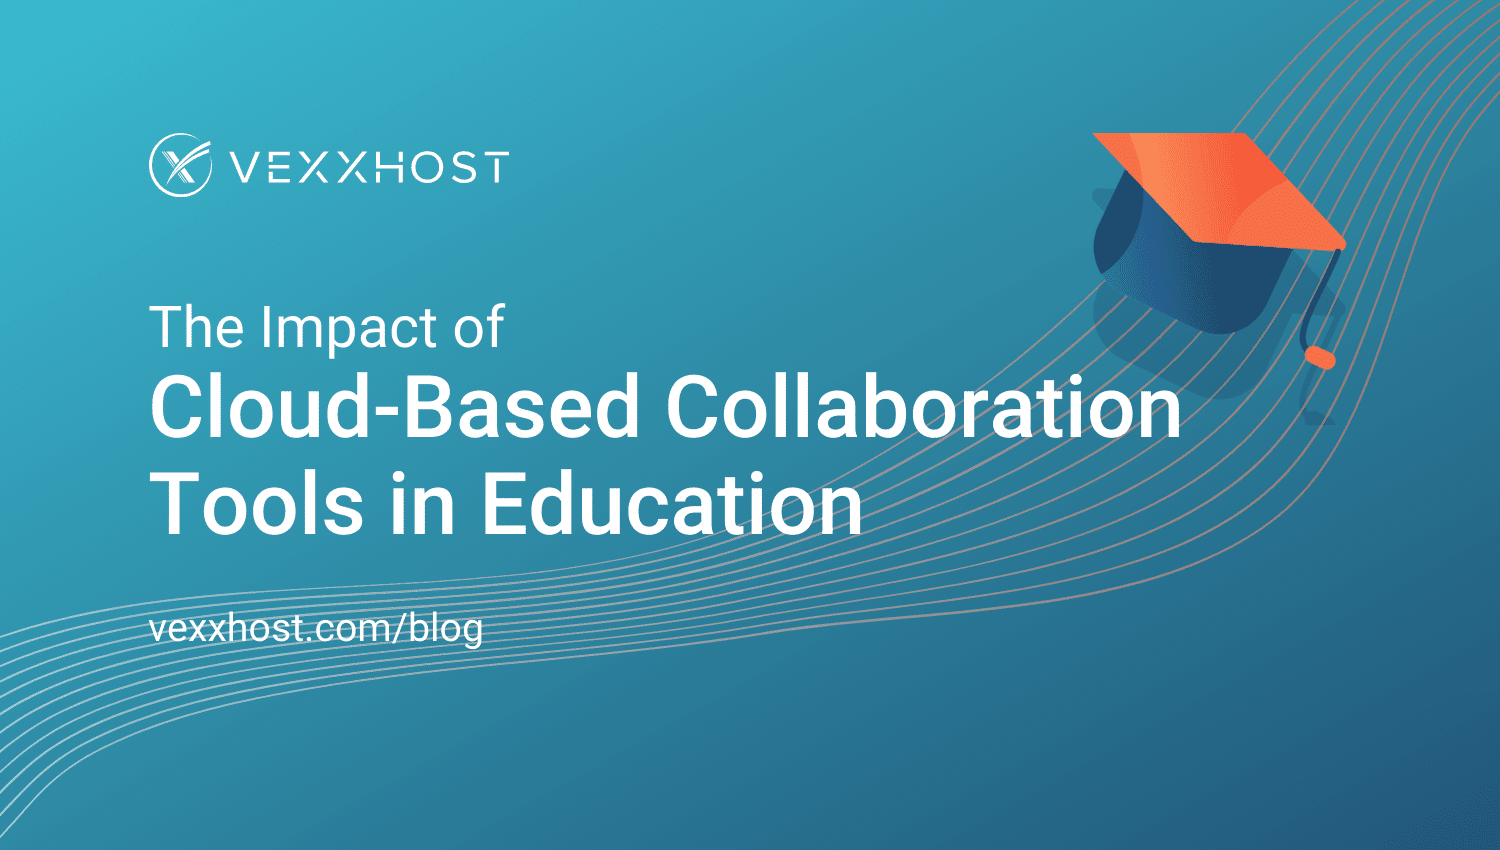 The Impact of Cloud-based Collaboration Tools in Education